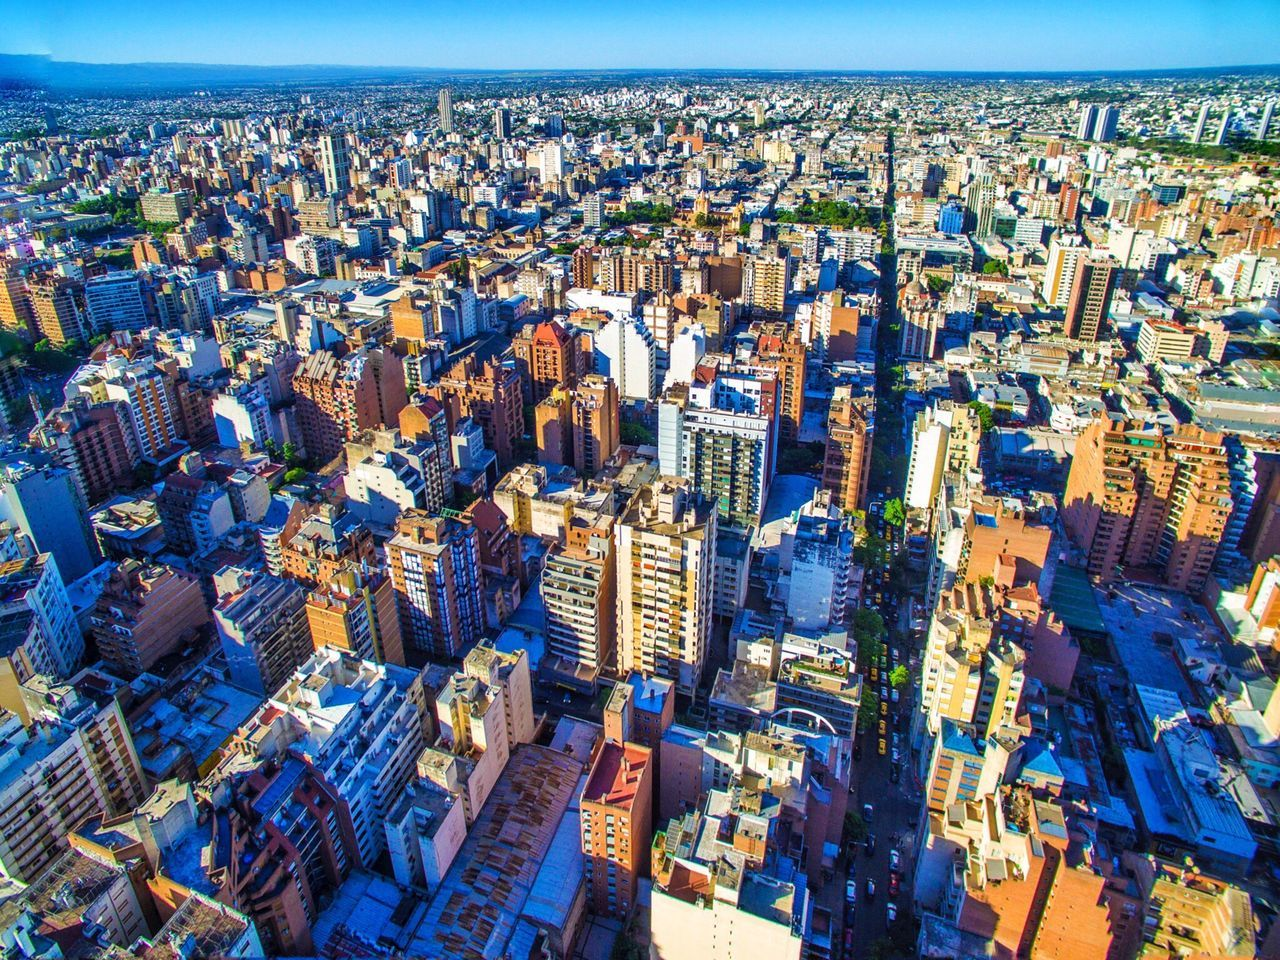 Cityscape City Skyscraper Aerial View Crowded Architecture Building Exterior High Angle View Modern Travel Destinations Urban Skyline Fish-eye Lens Blue Outdoors Day Sky People